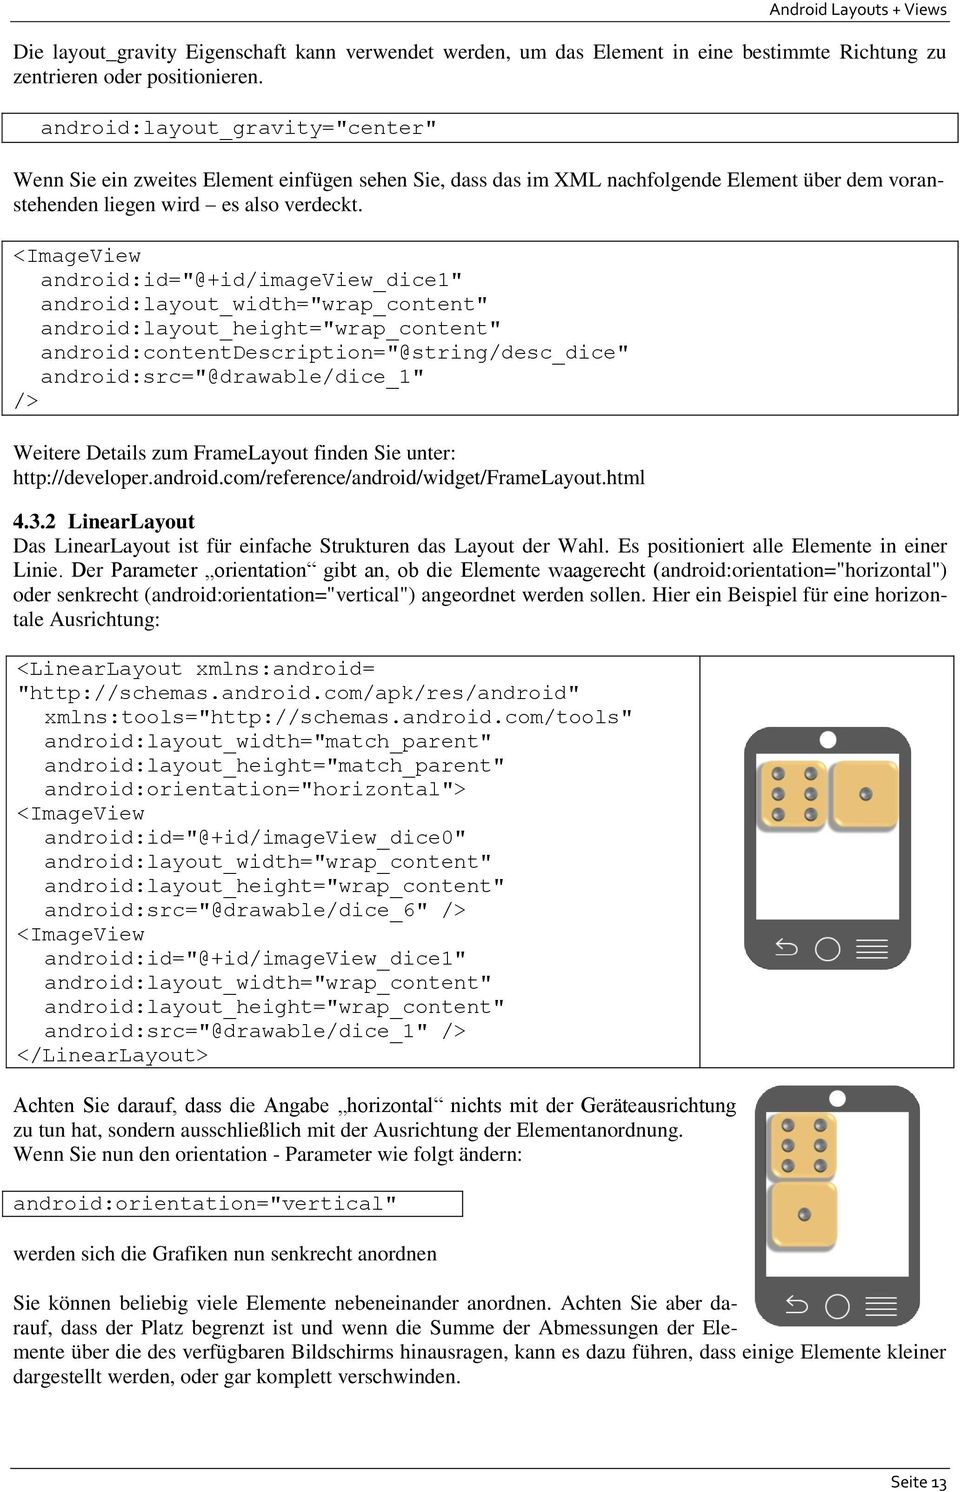 Android Layouts + Views Android Kurs Stufe 1 (Gelbgurt) - PDF